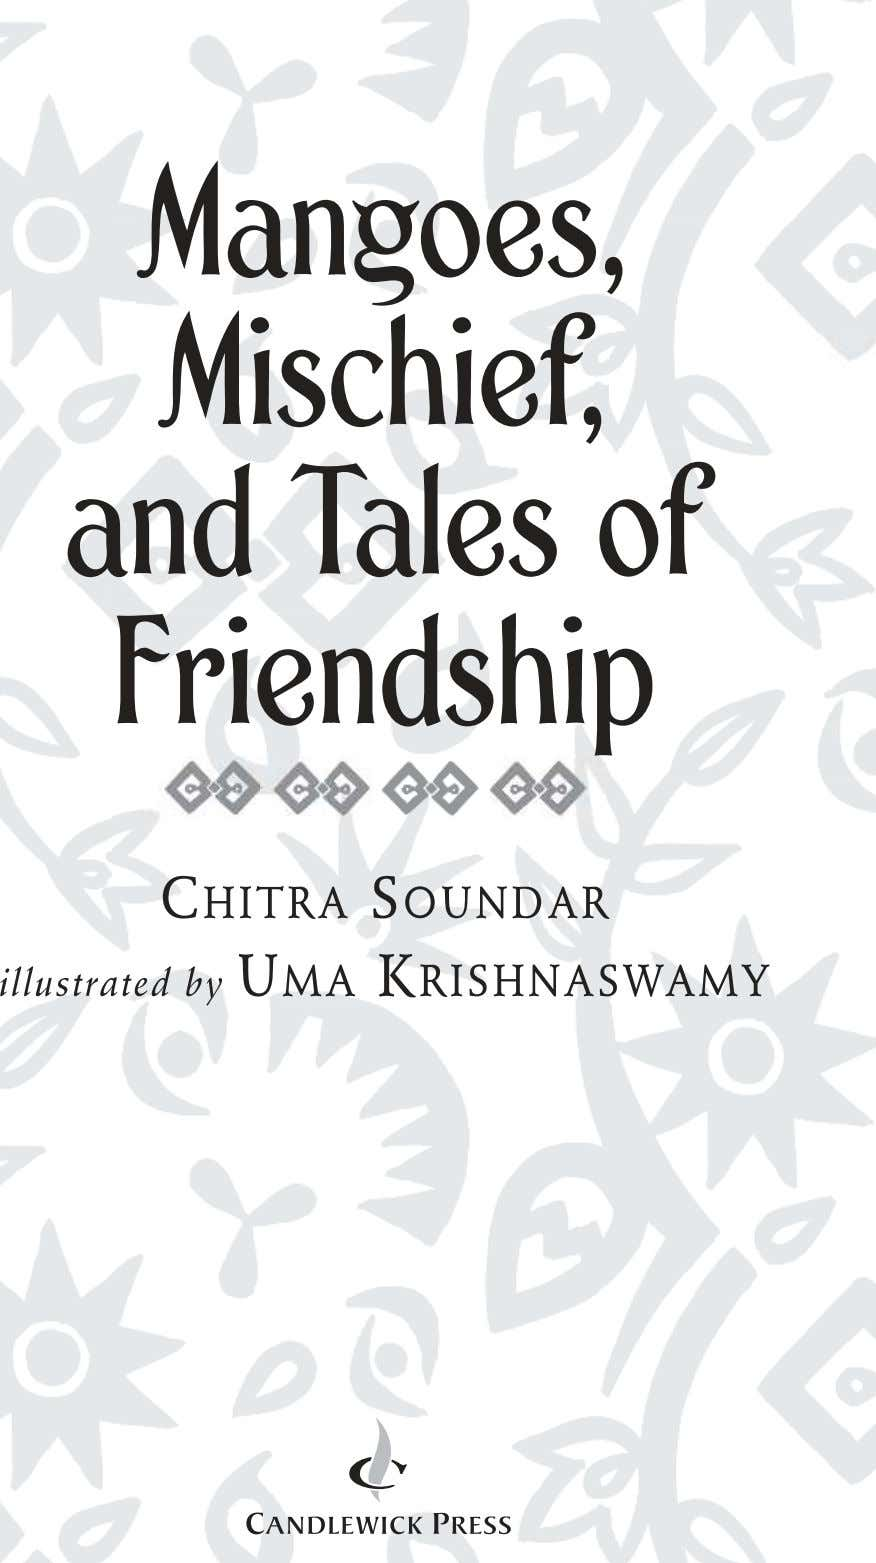 Mangoes, Mischief, and Tales of FriendshipFriendship CHITRA SOUNDAR illustrated by UMA KRISHNASWAMY